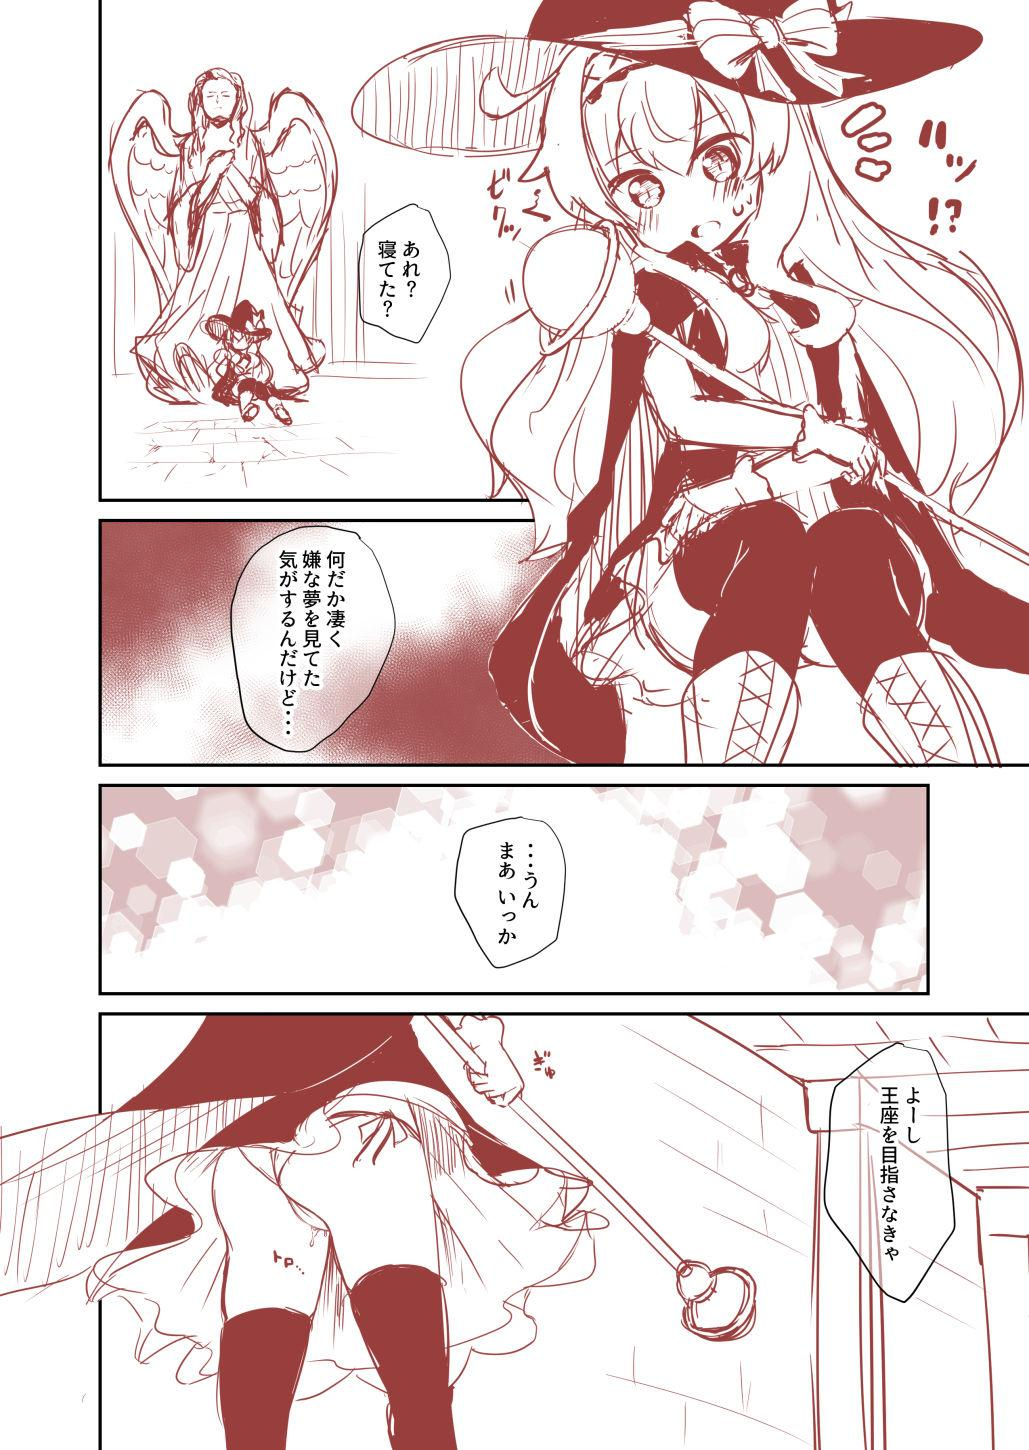 A story about Nobeta not returning to the Goddess Statue even though she failed 27